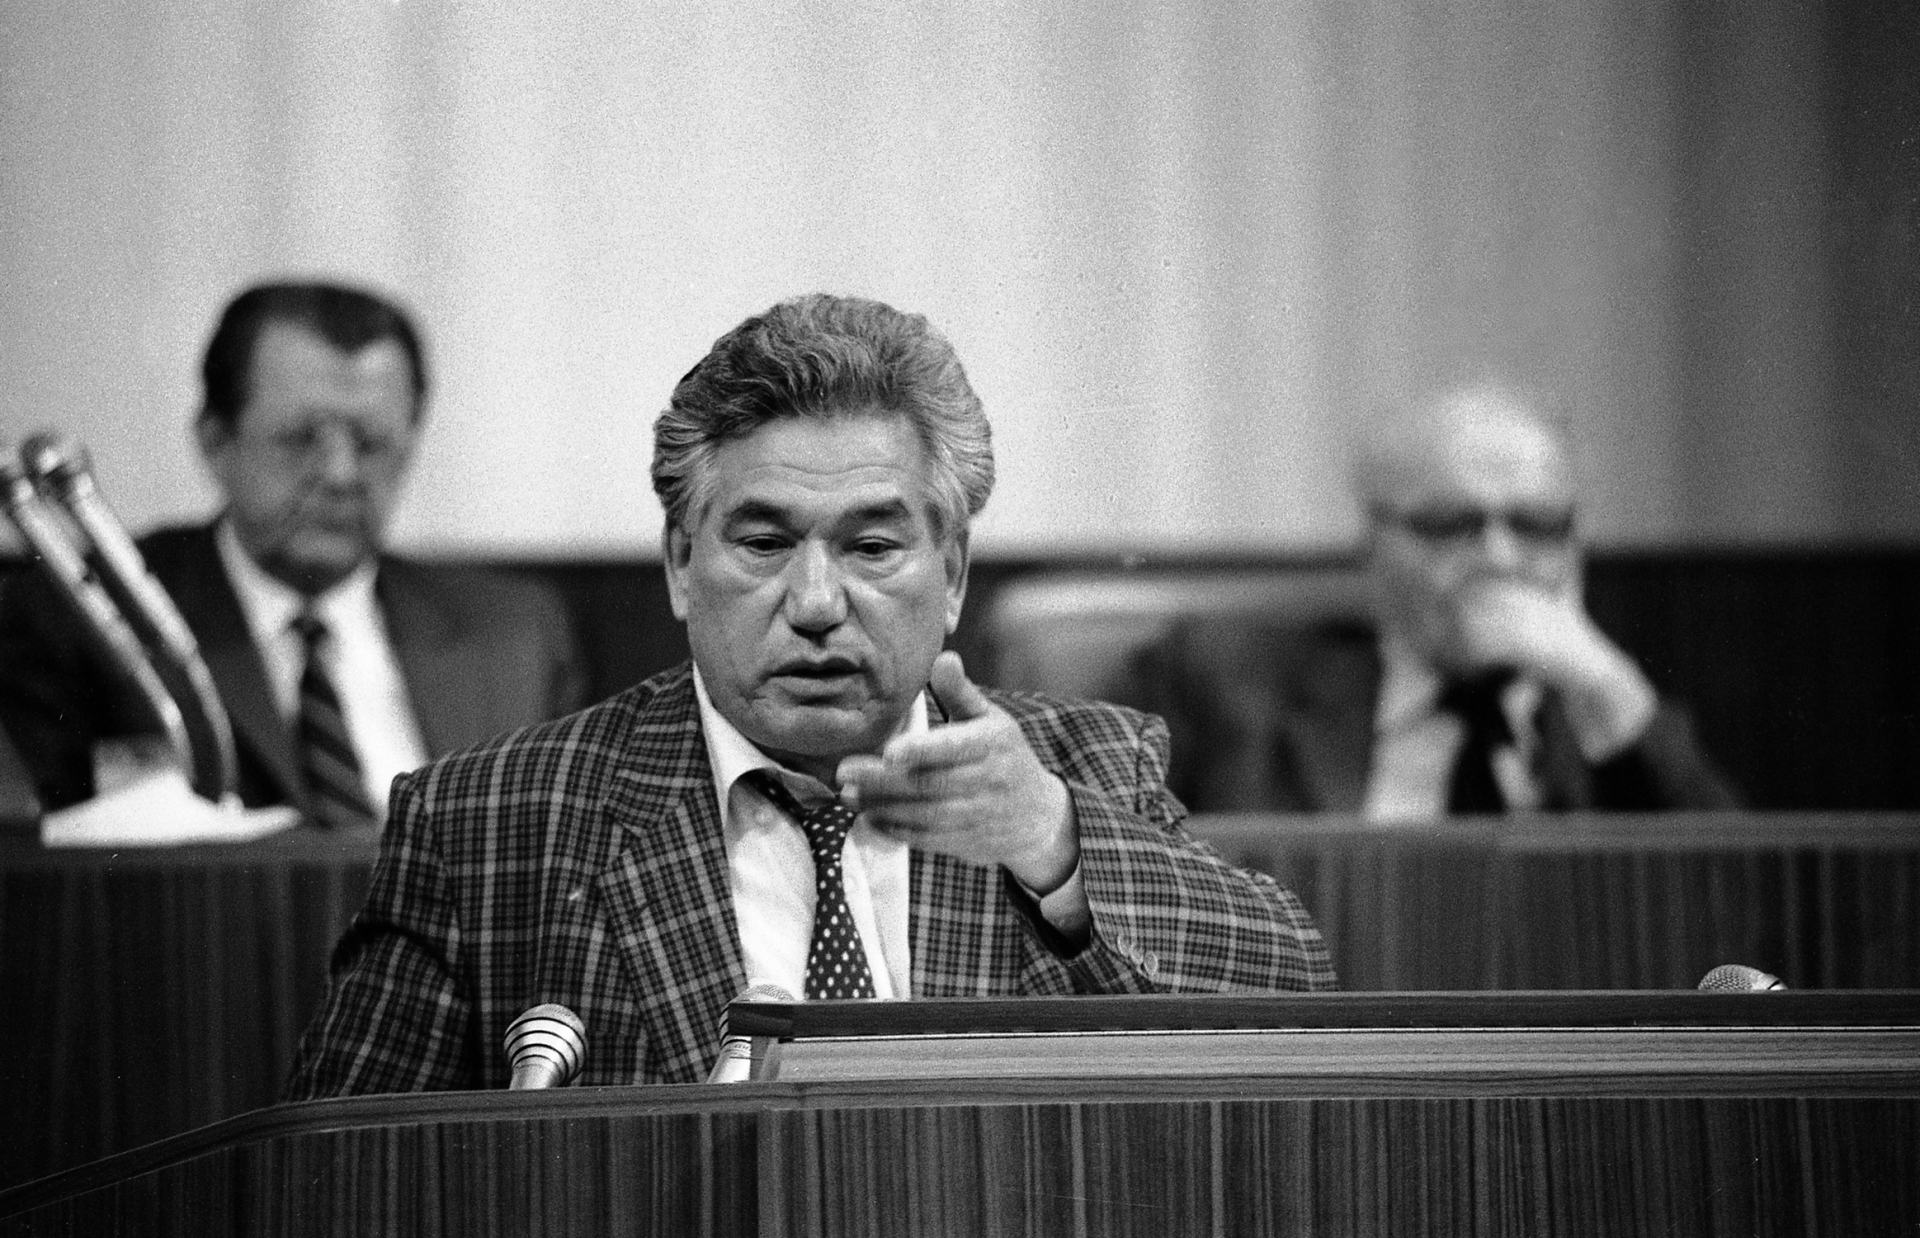 chingiz aitmatov russia reform Chinghiz aitmatov, the best known figure of his country's literature was born on 12 december 1928 in sheker, near talas in kyrgyzstan, a writer who composed works both in russian as well as in kyrgyz.